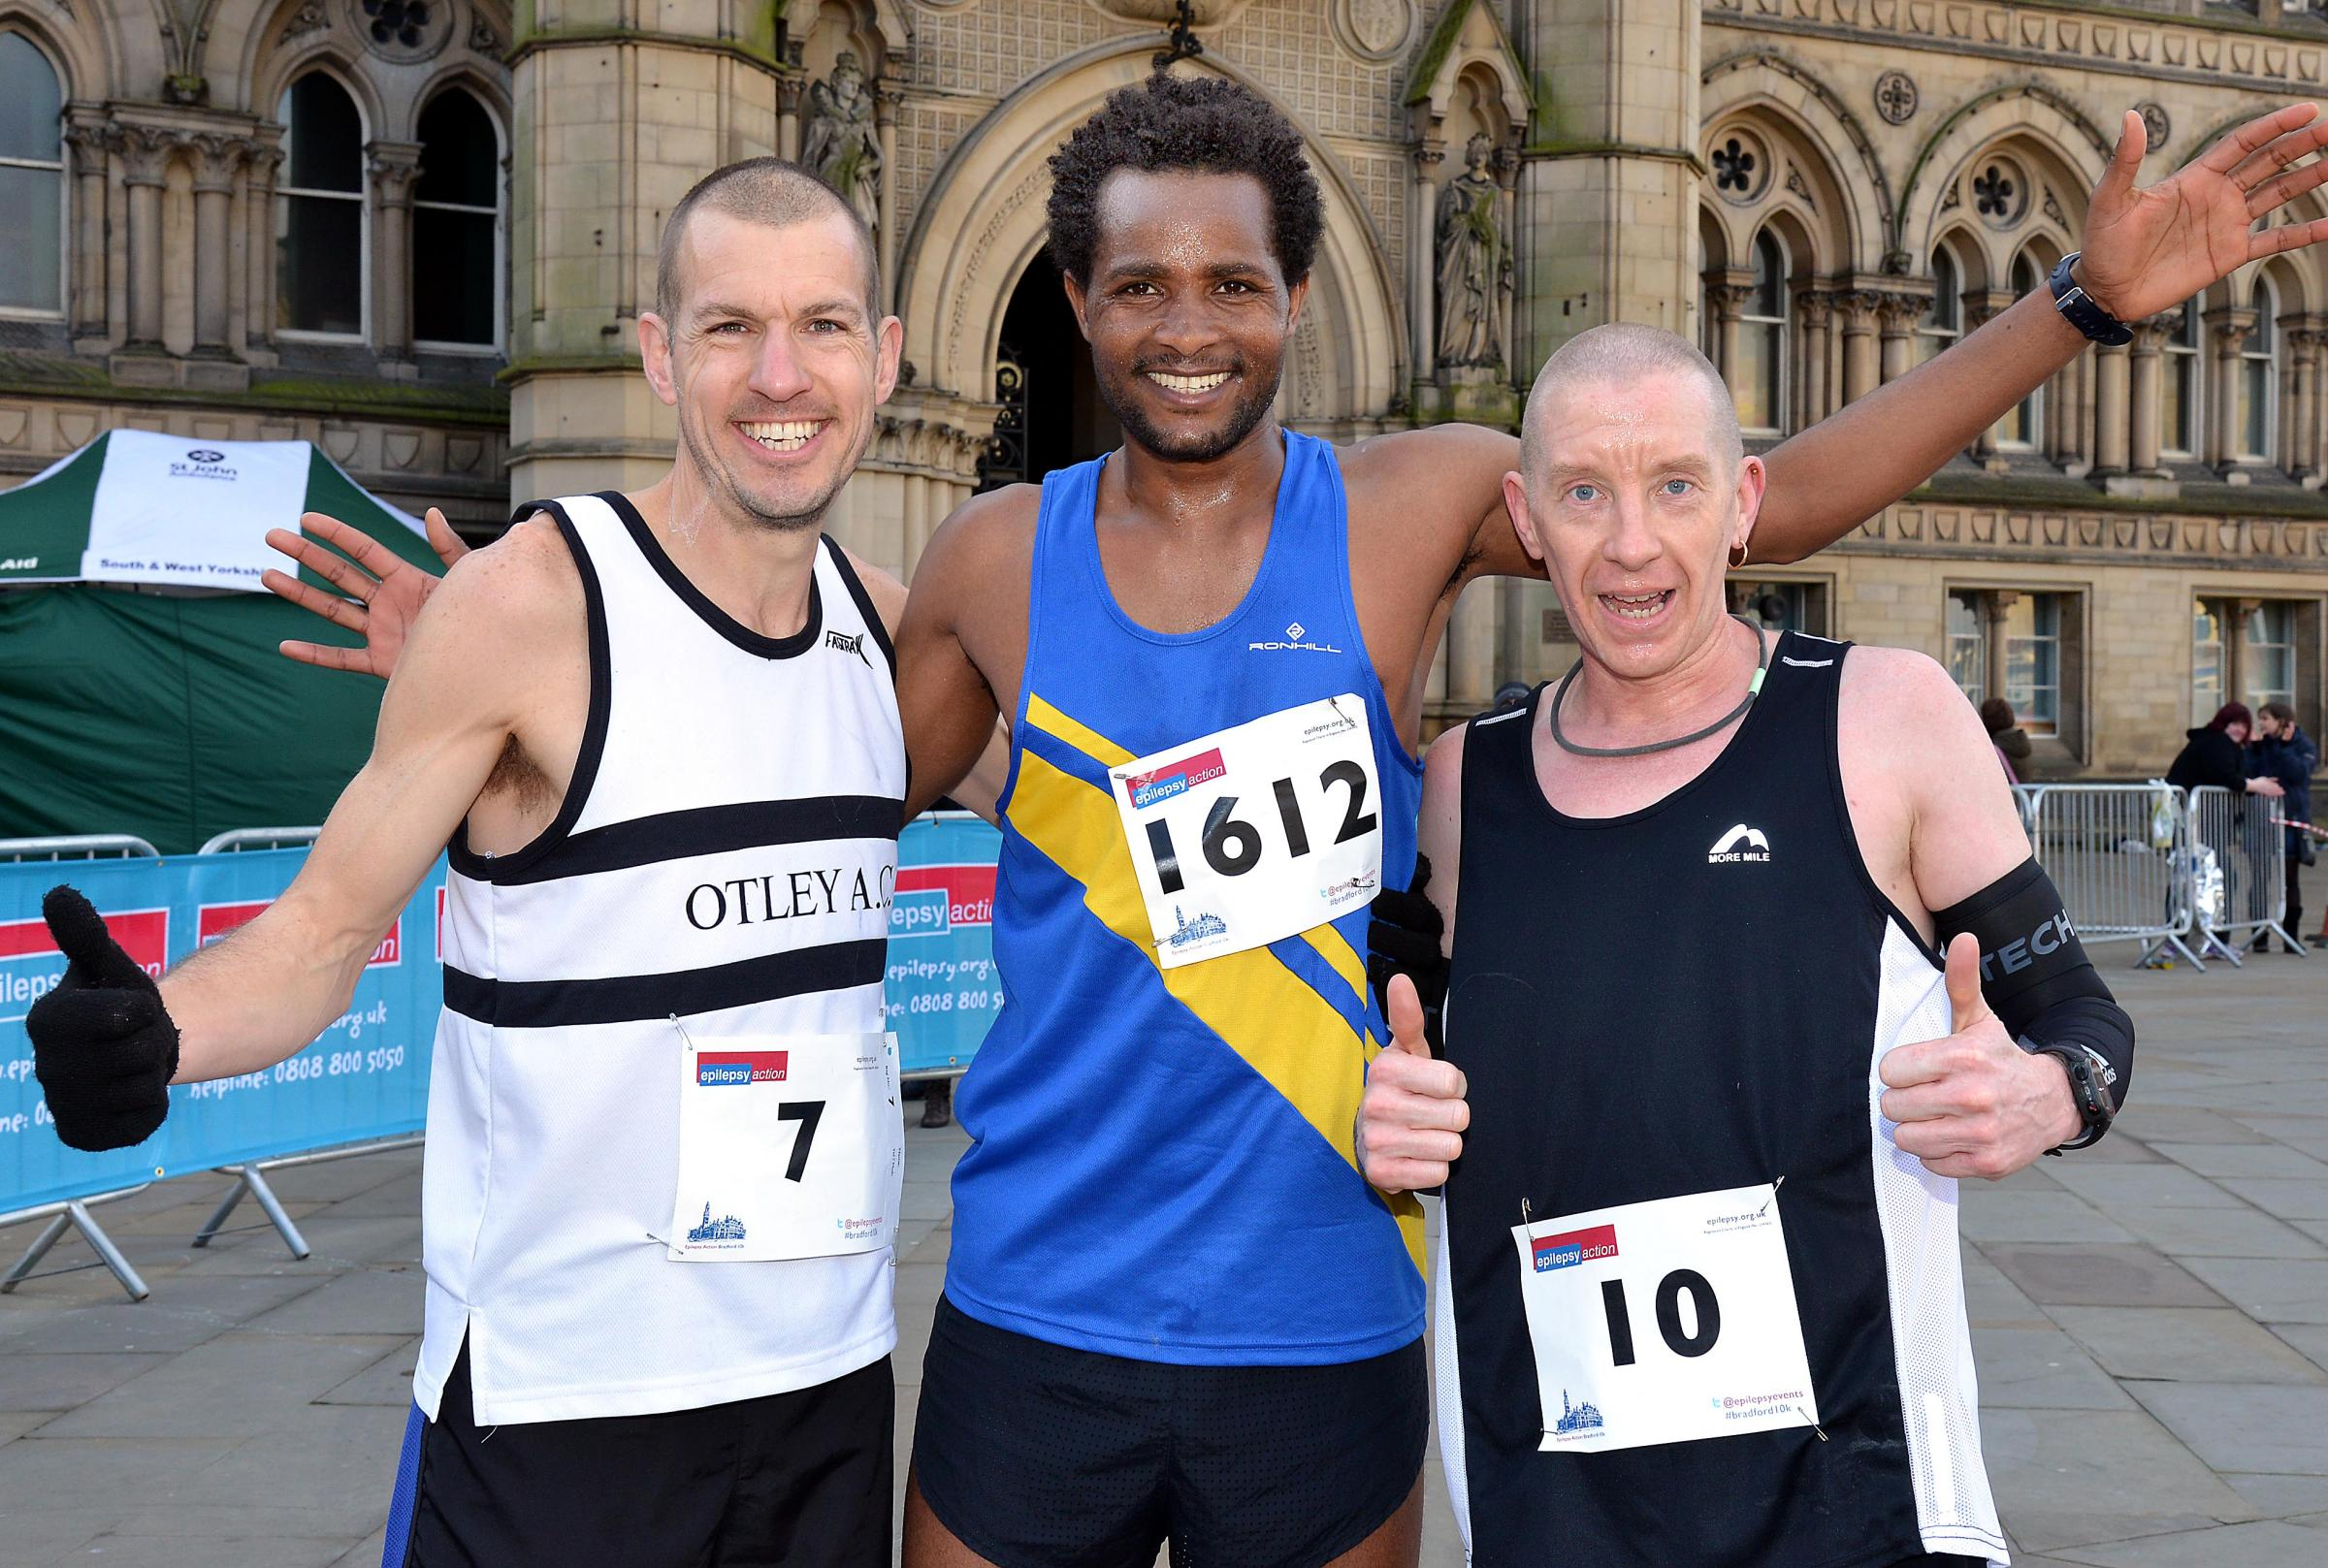 Record field for Epilepsy Action charity race in Bradford